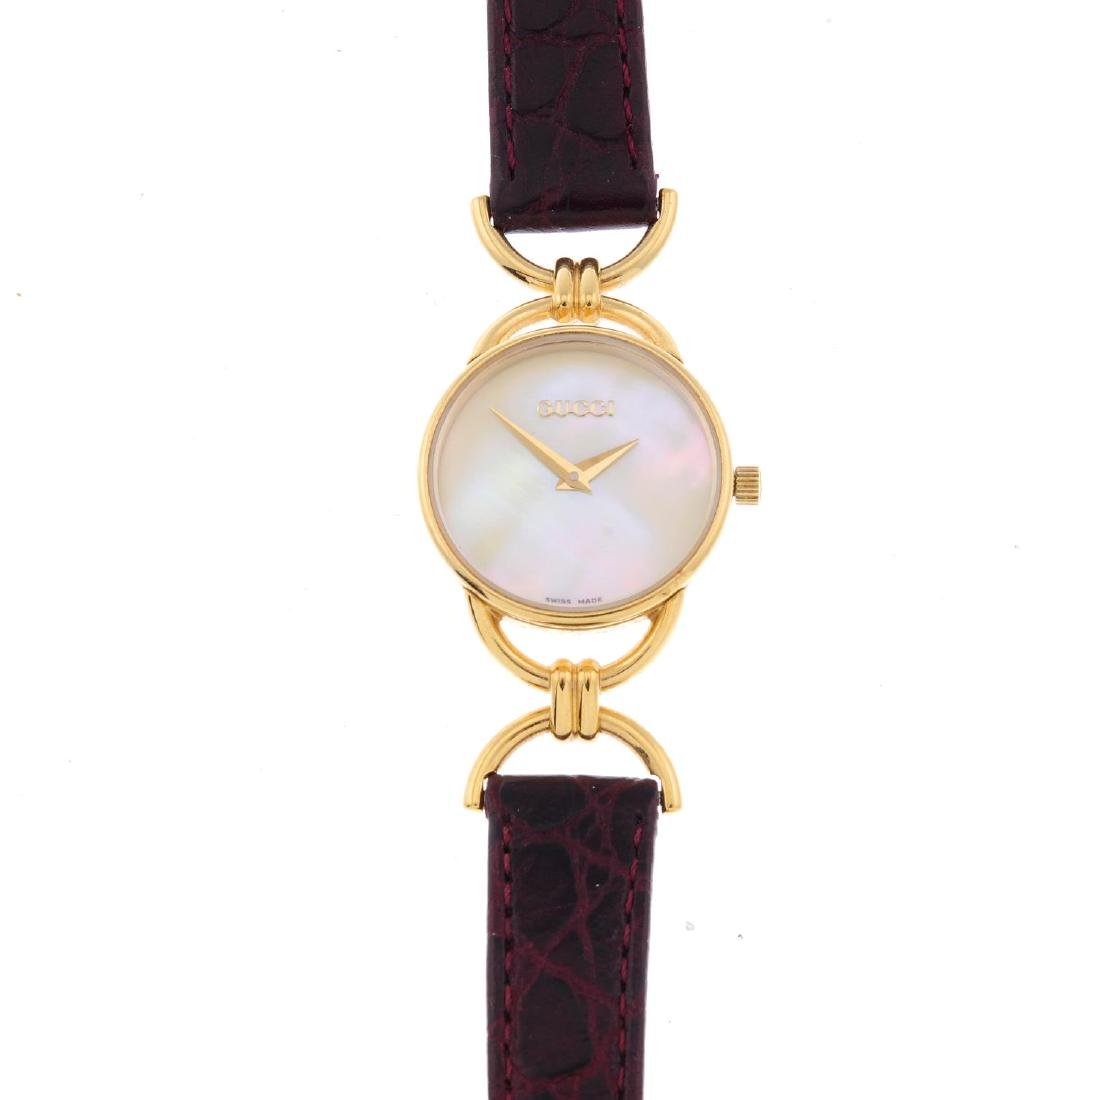 GUCCI - a lady's 6000.2.L wrist watch. Gold plated